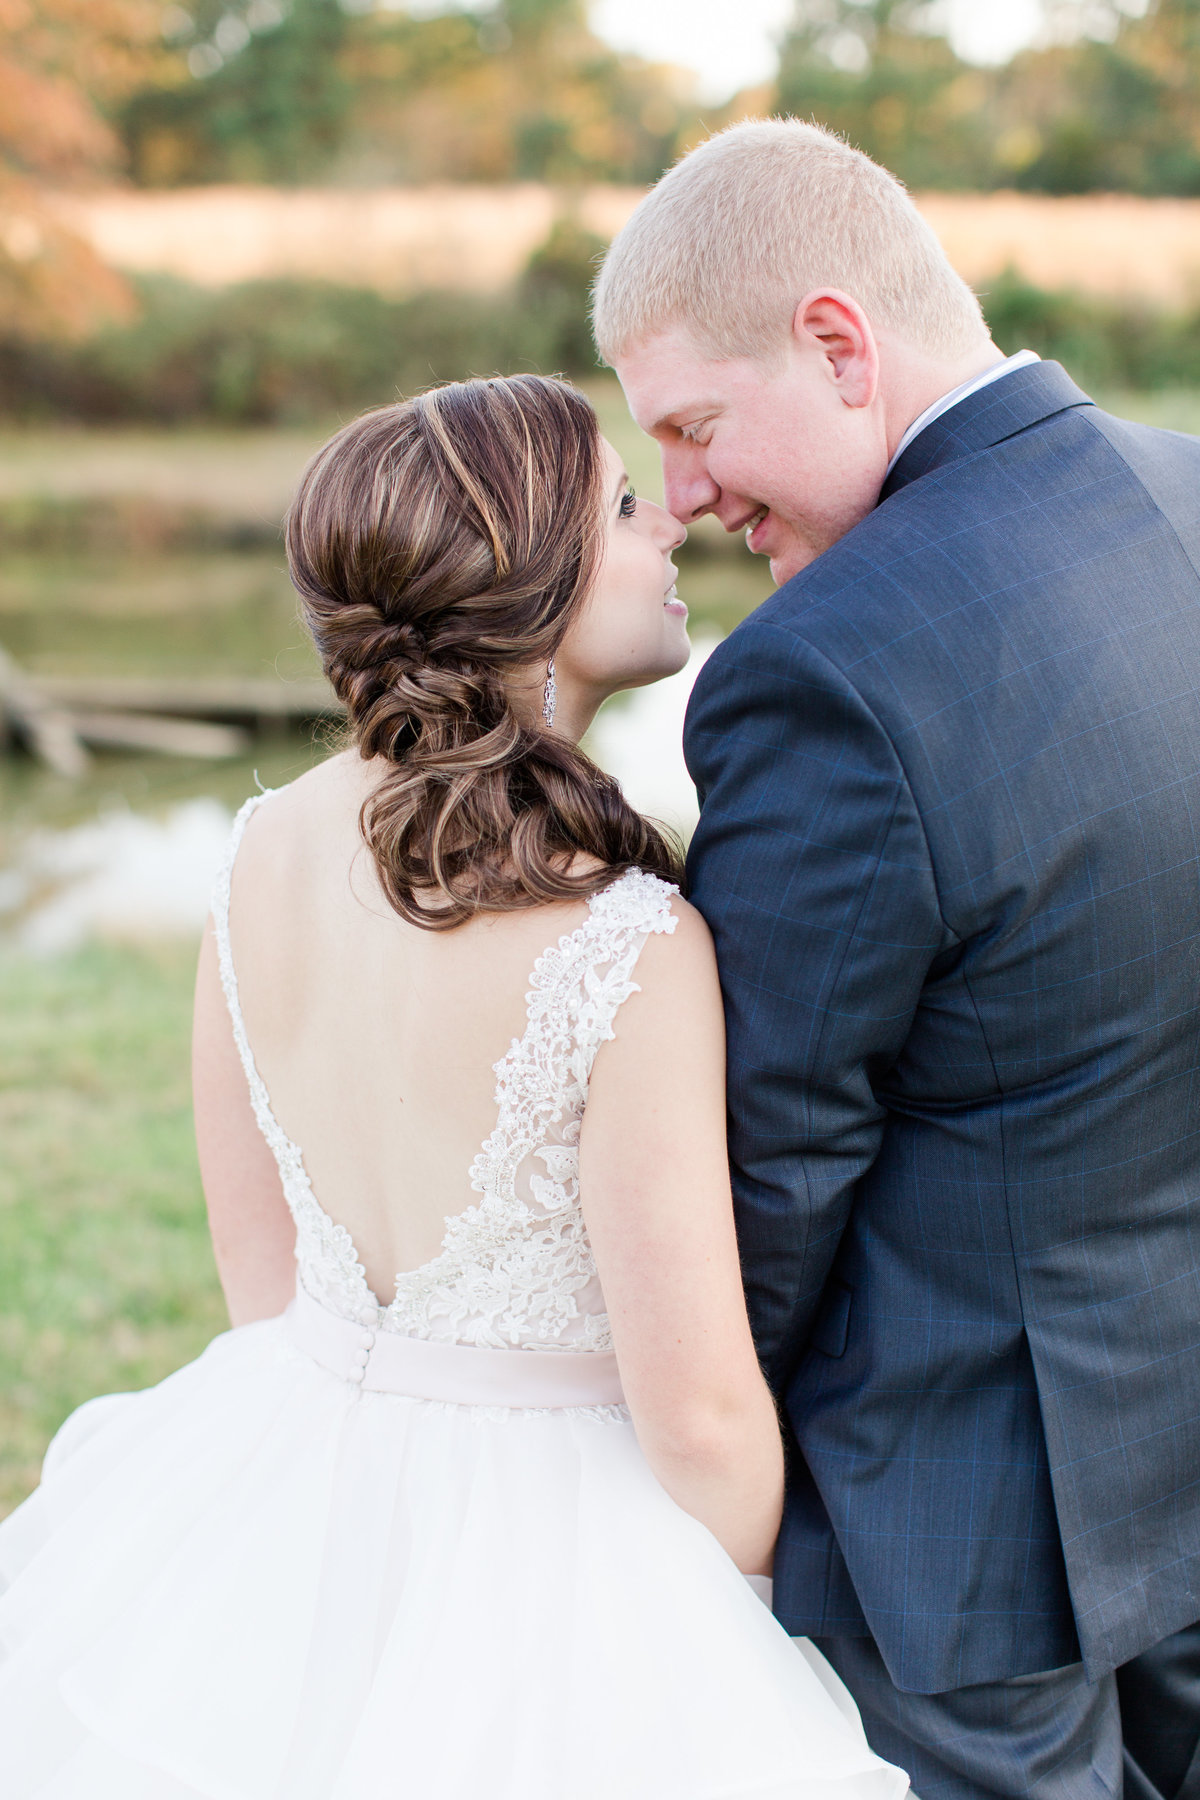 barns-hamilton-station-vineyard-wanka-wedding-bride-groom-bethanne-arthur-photography-photos-52